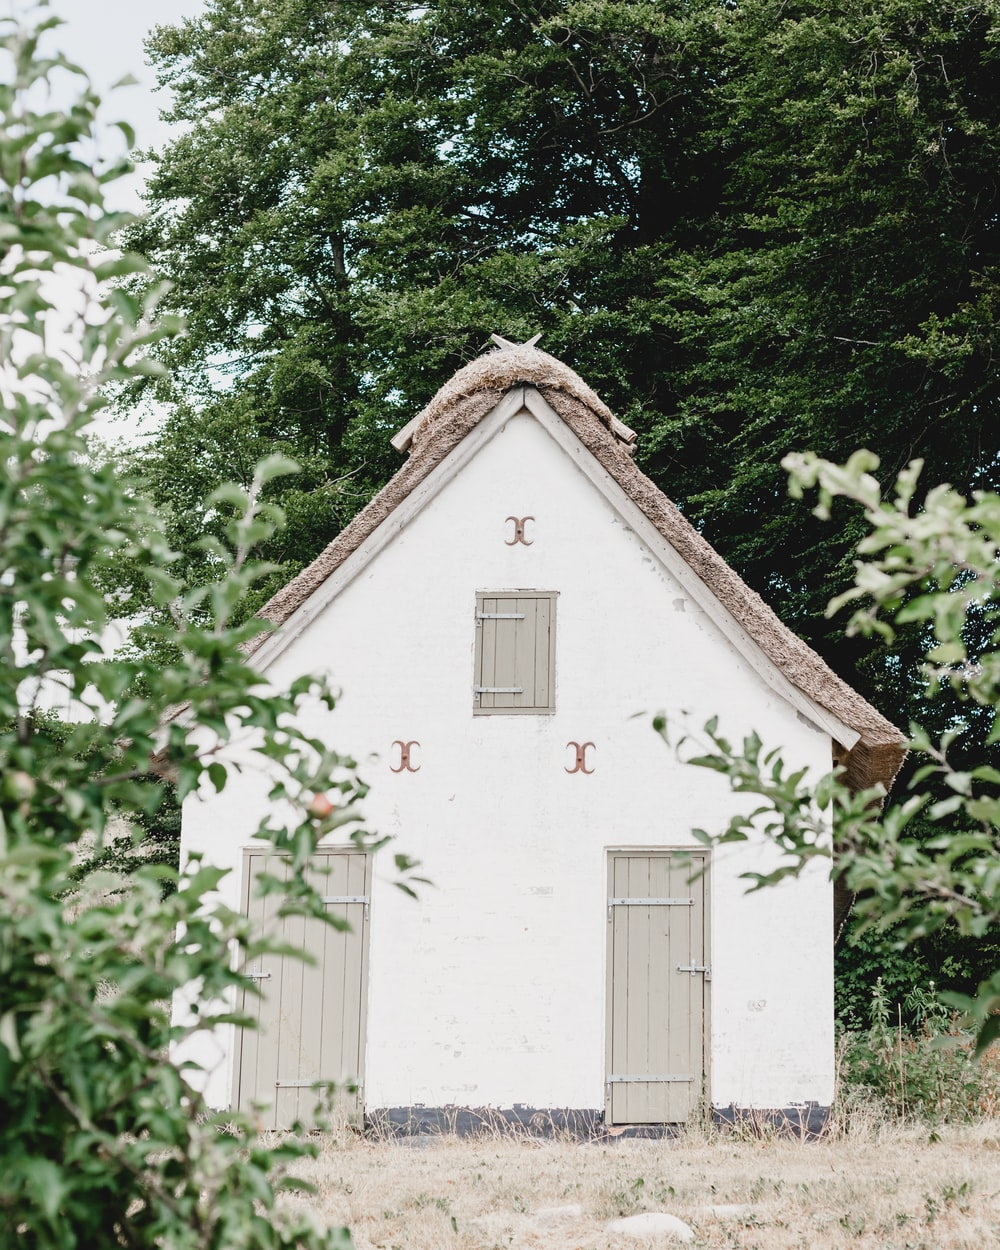 white concrete house surrounded by green leafed trees